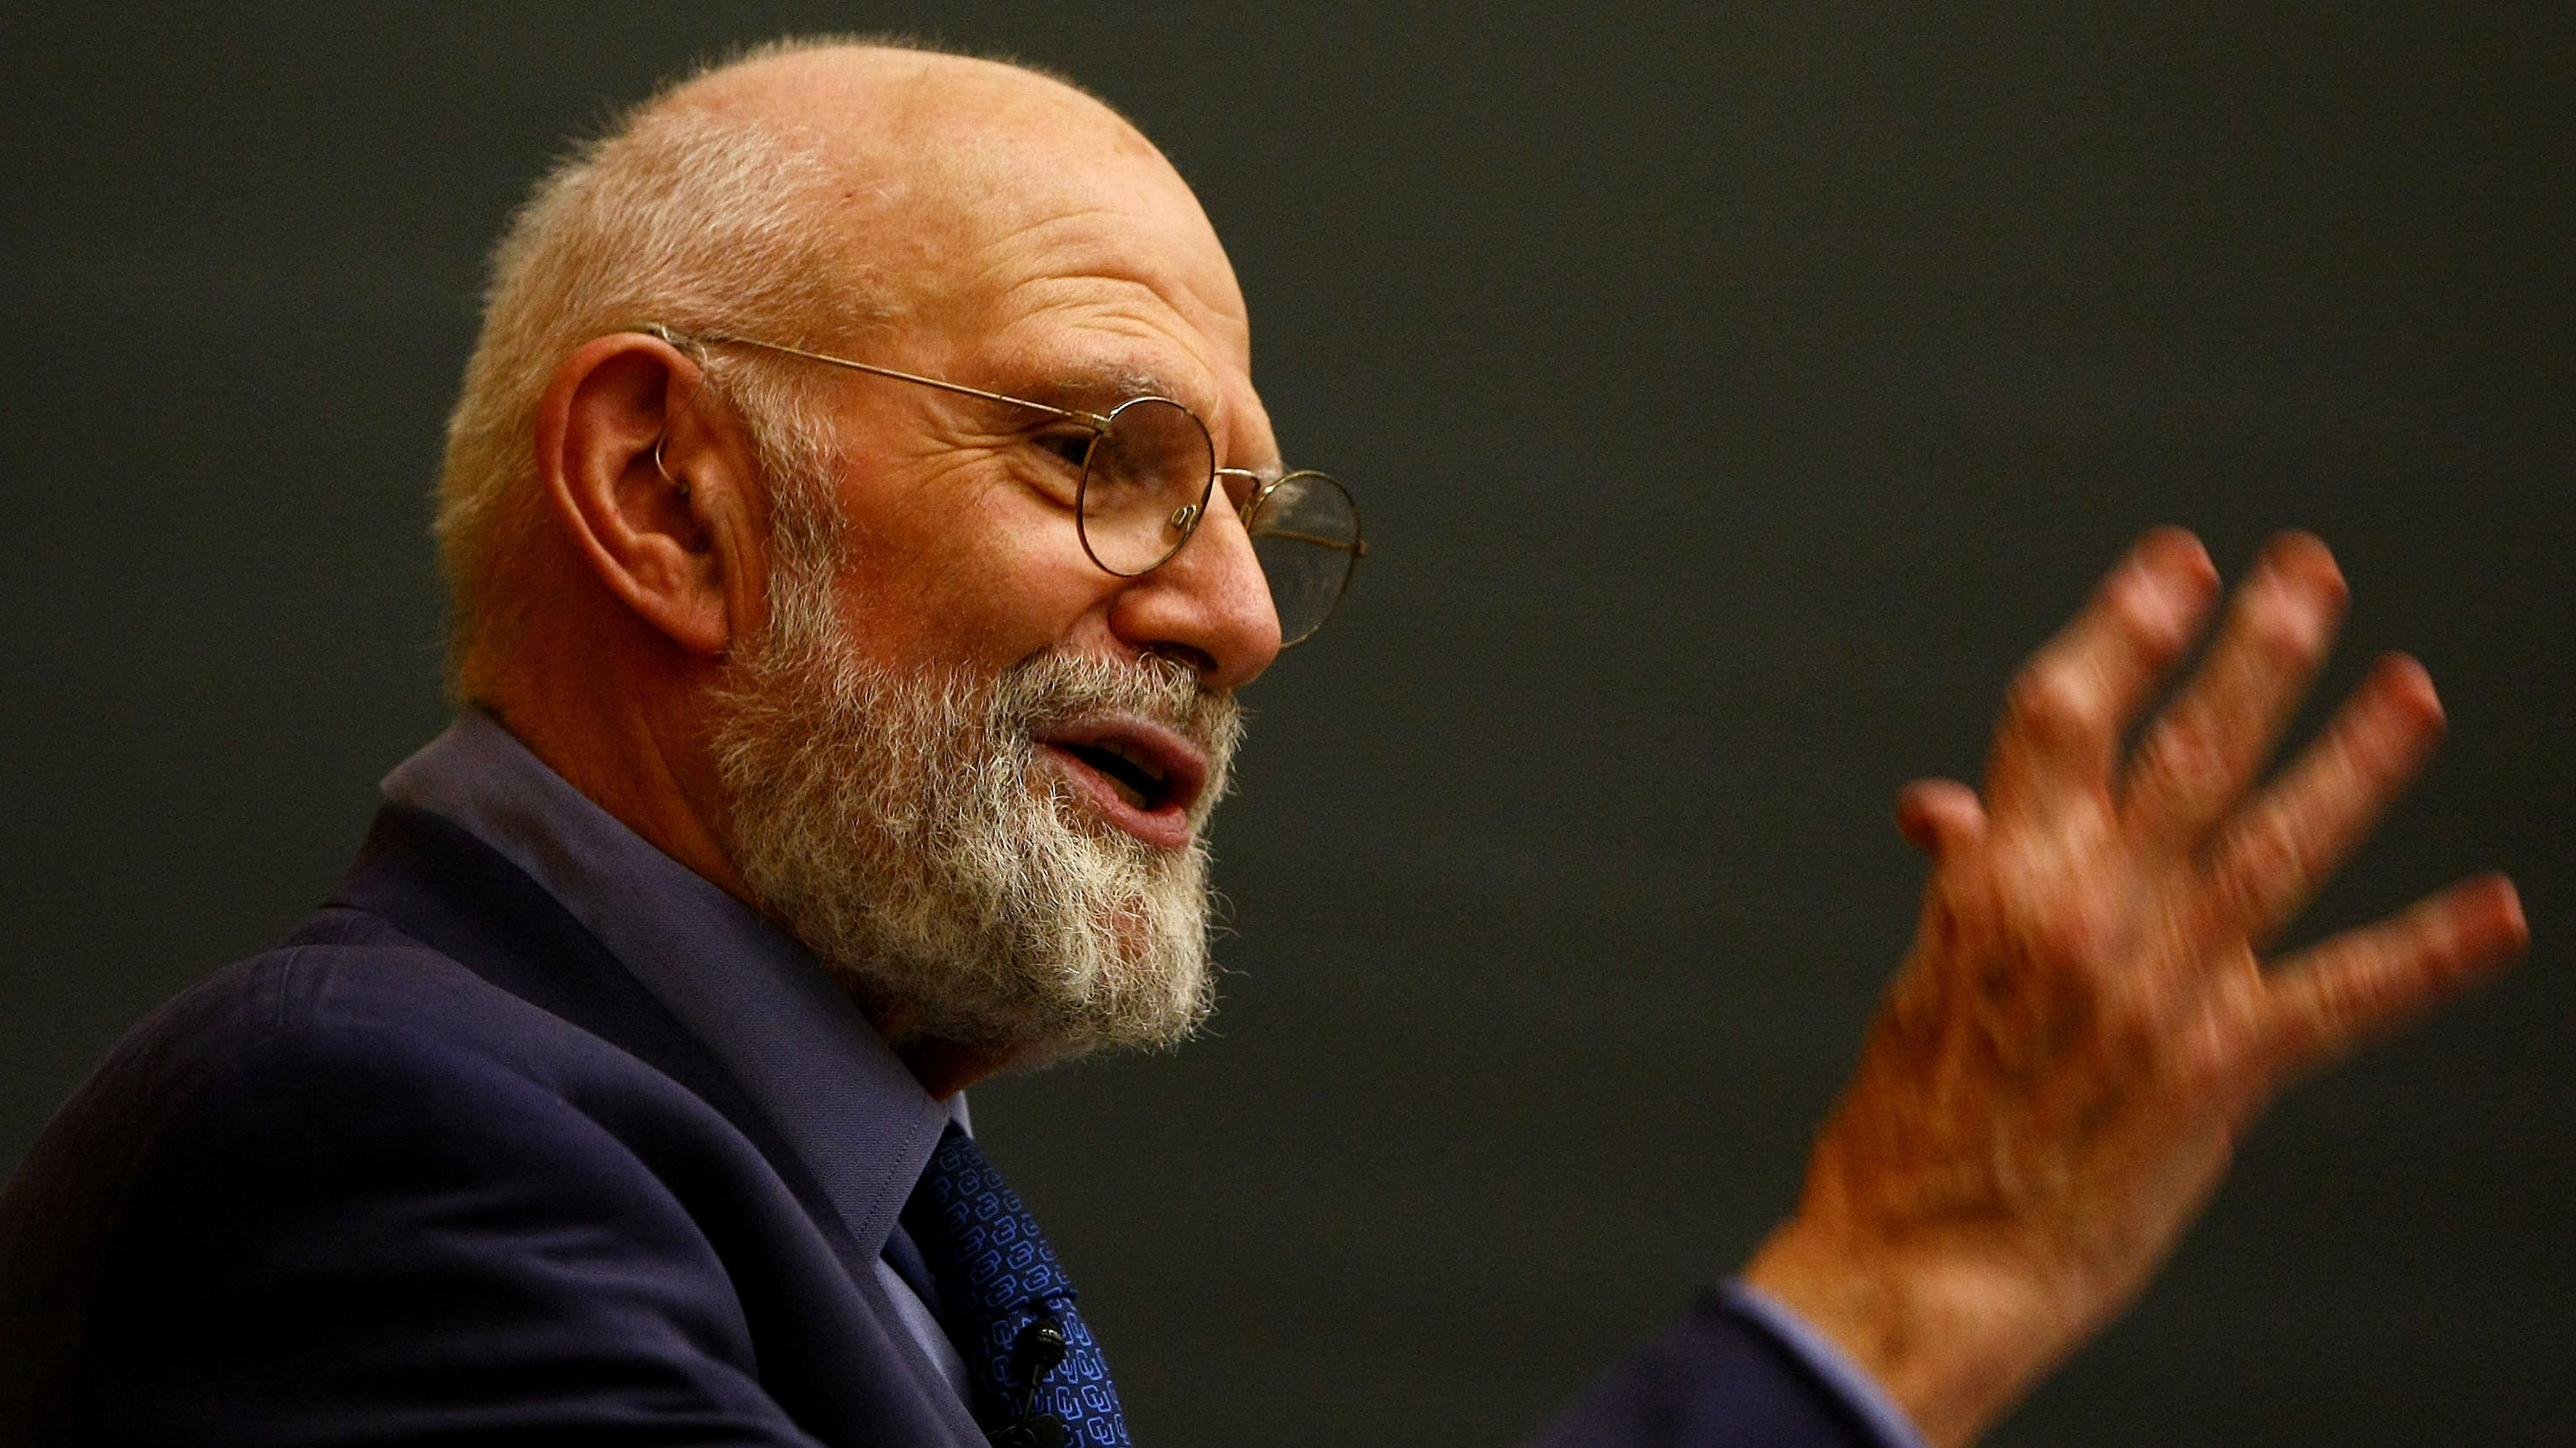 Oliver Sacks: A Neurologist At The 'Intersection Of Fact And Fable'